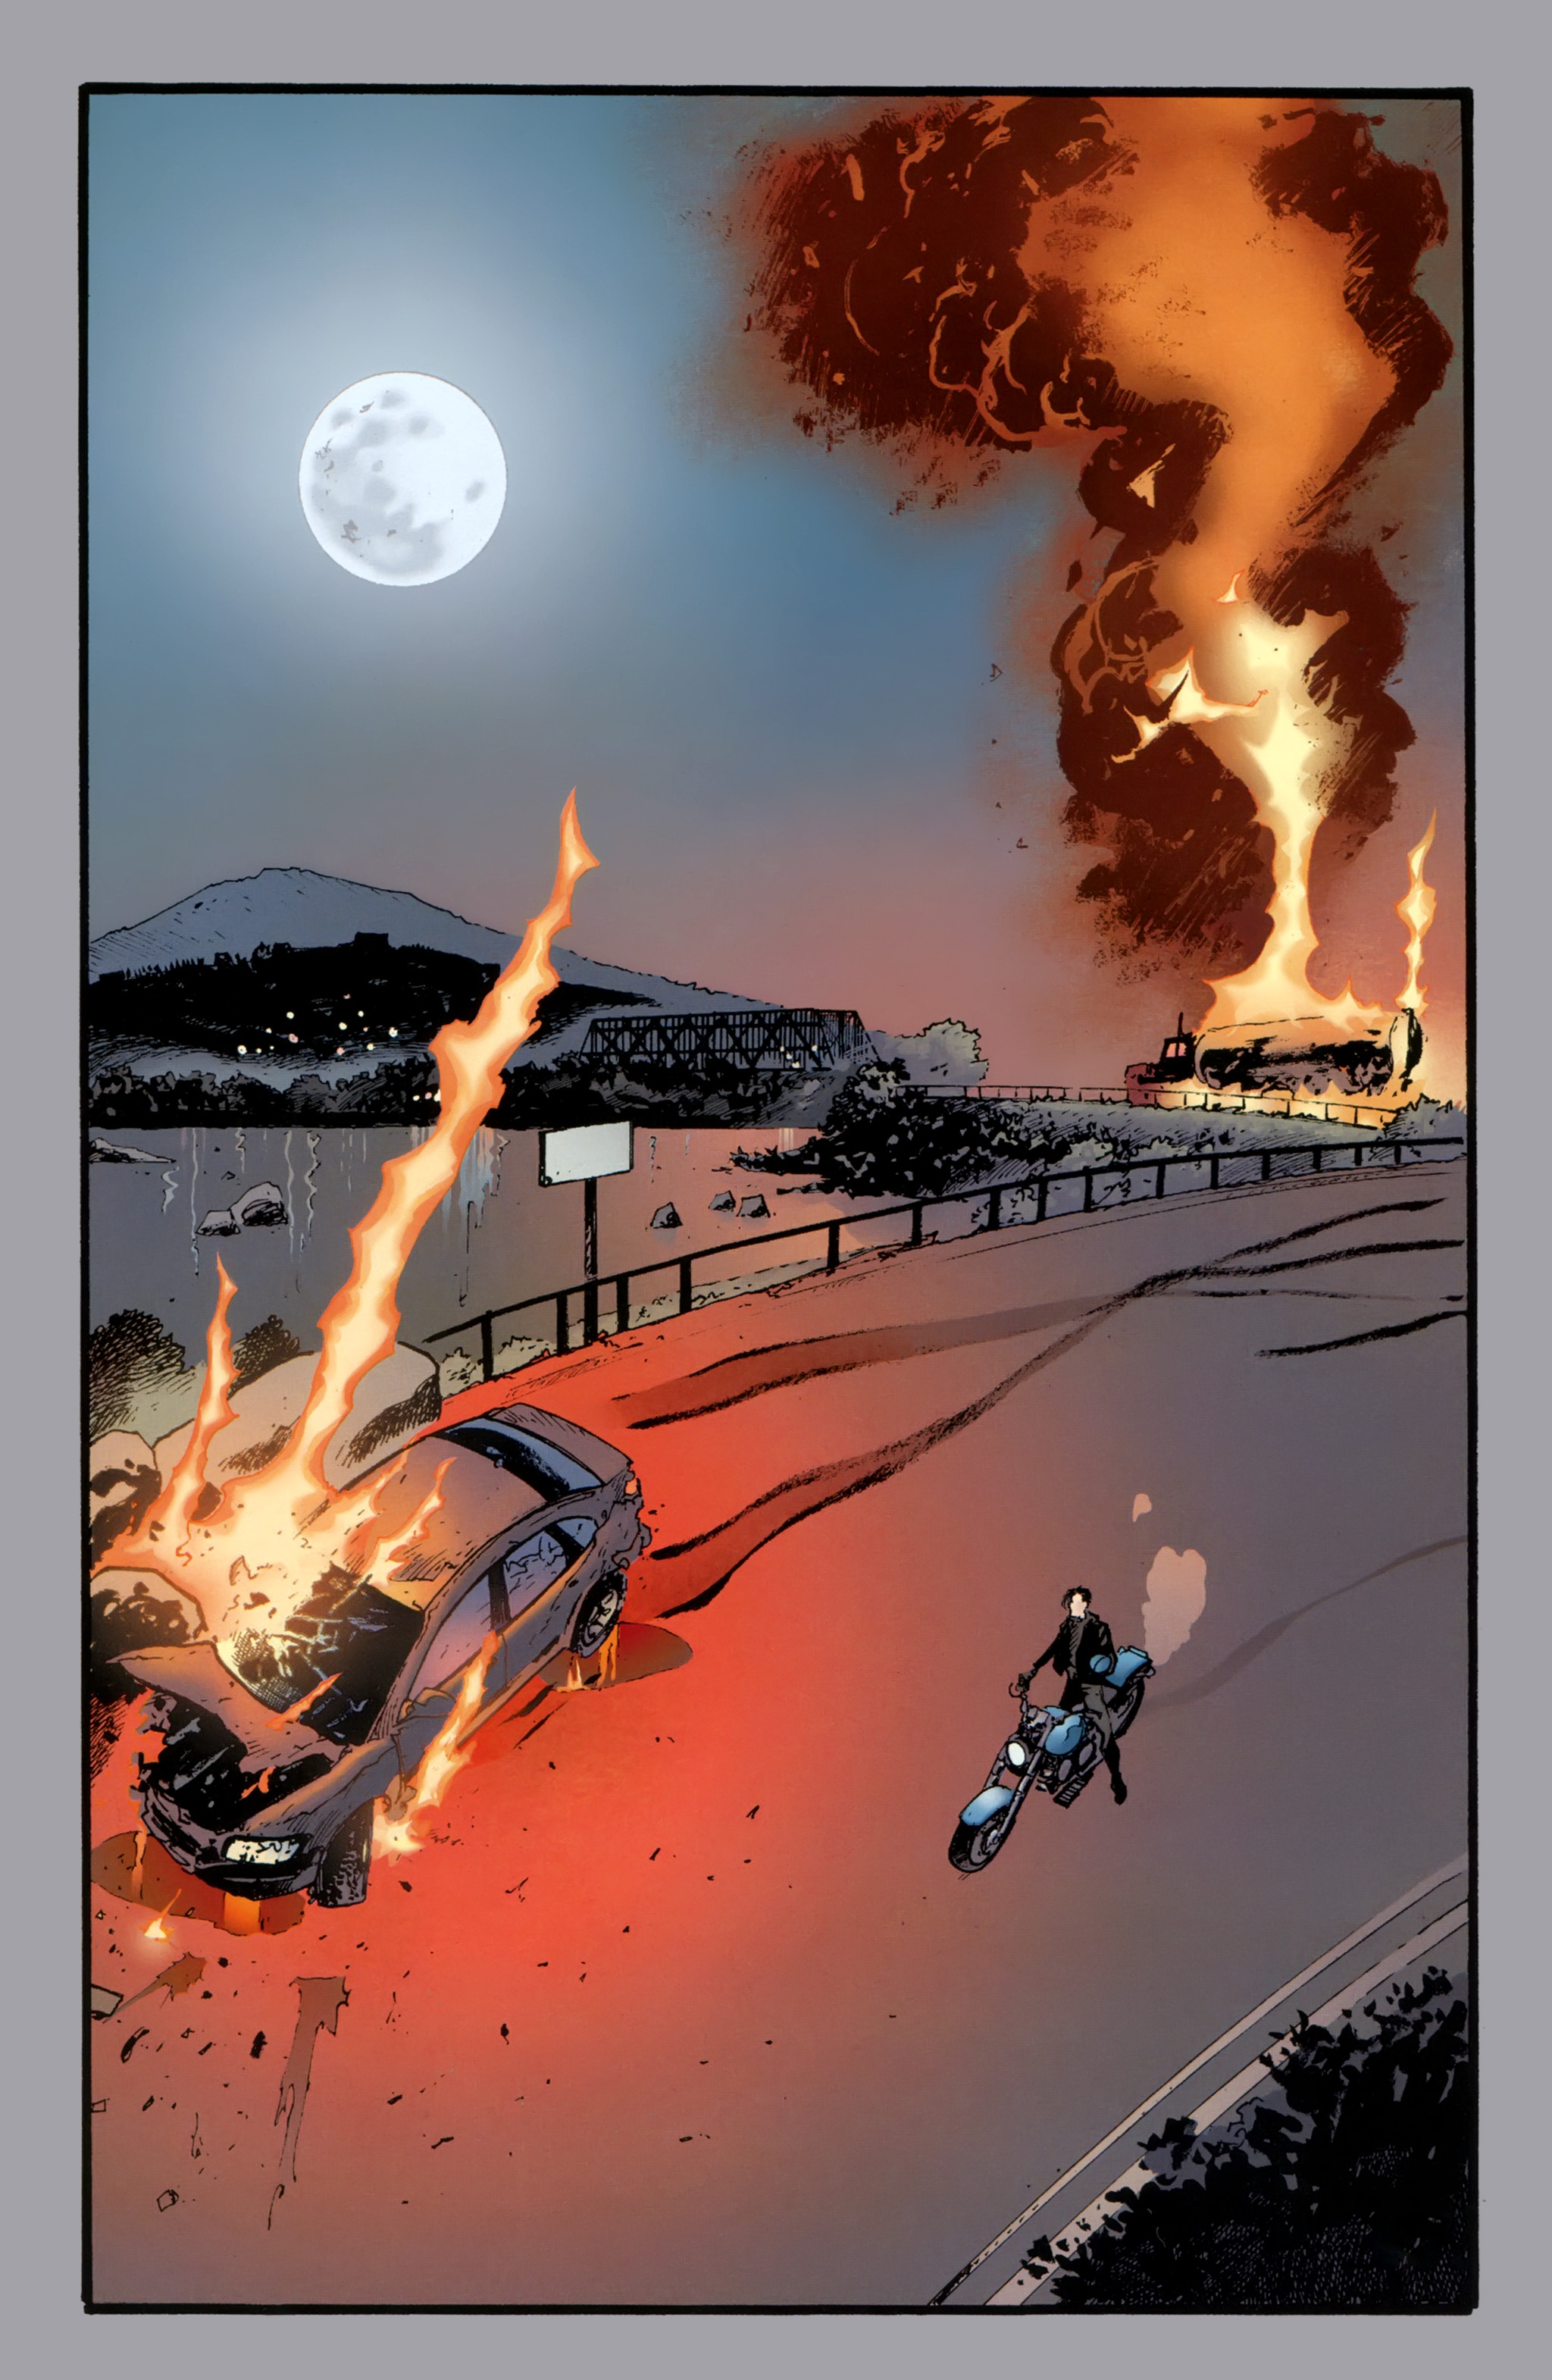 Read online The Girl With the Dragon Tattoo comic -  Issue # TPB 2 - 108